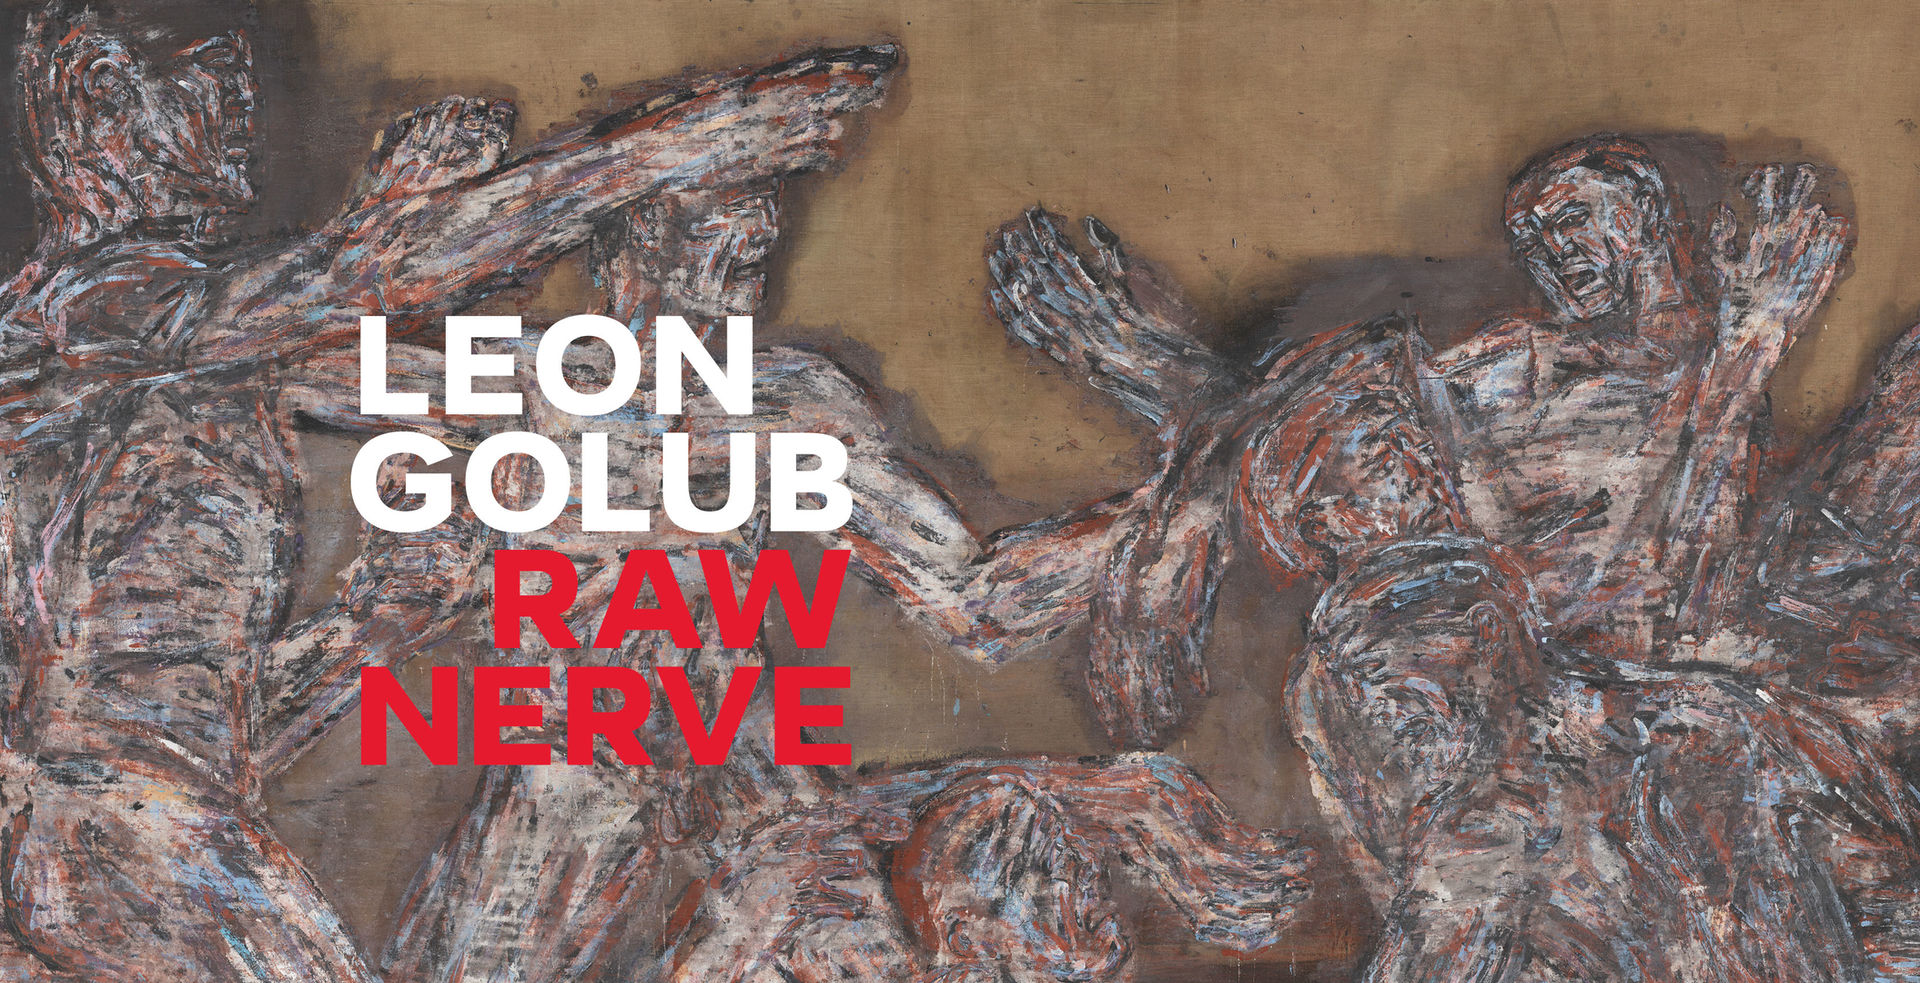 Leon Golub: Raw Nerve - The Metropolitan Museum of Art, New York 2018-05-23 20:01